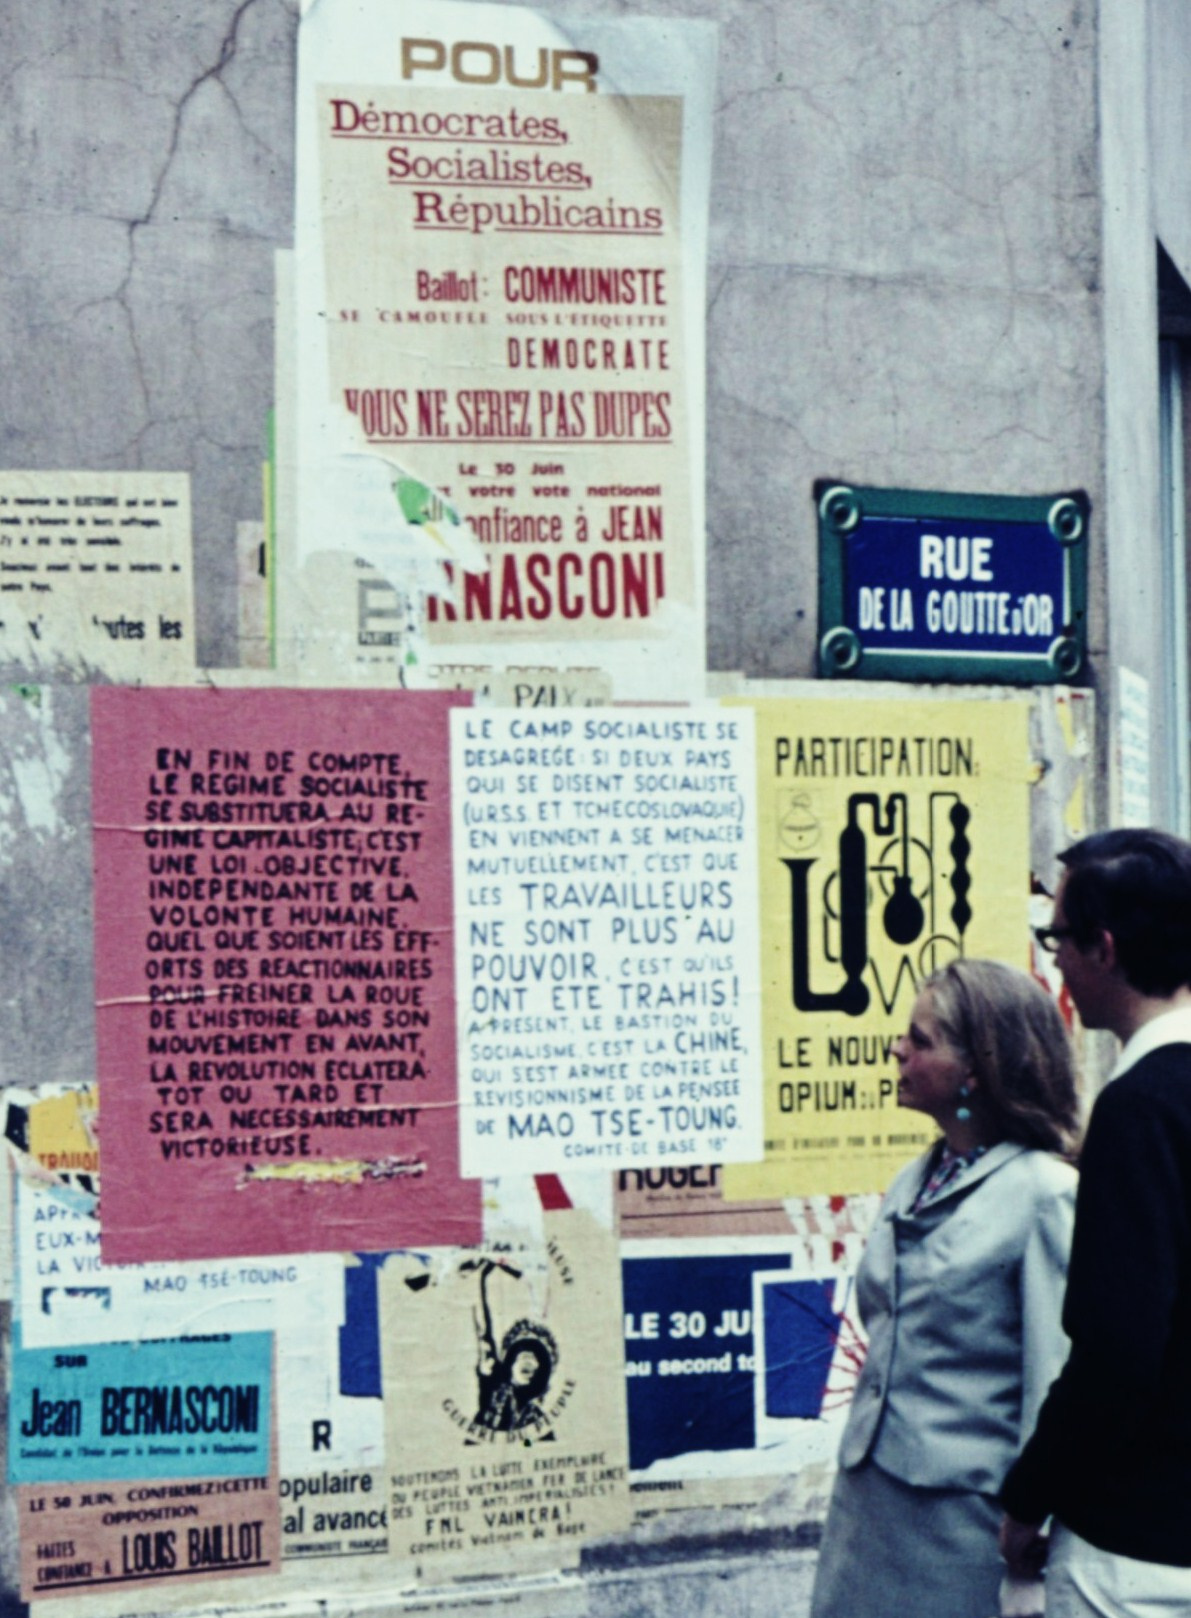 Posters in Paris in July 1968 Robert Schediwy - Self-photographed (slide) Posters on a wall - the remnants of May 1968.